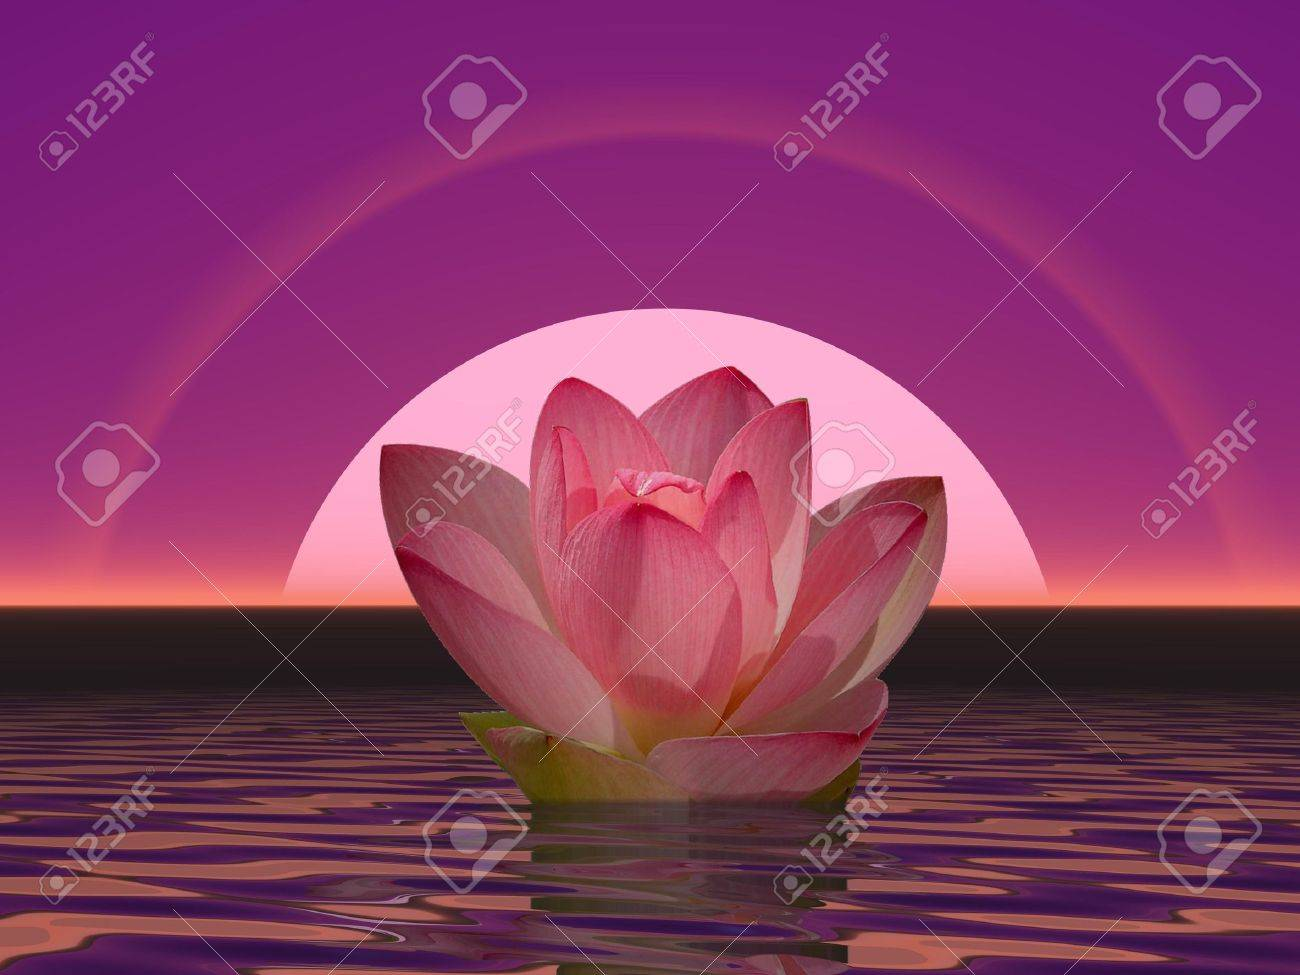 Pink lily flower on water in front of moon or sun with halos Stock Photo - 15385002